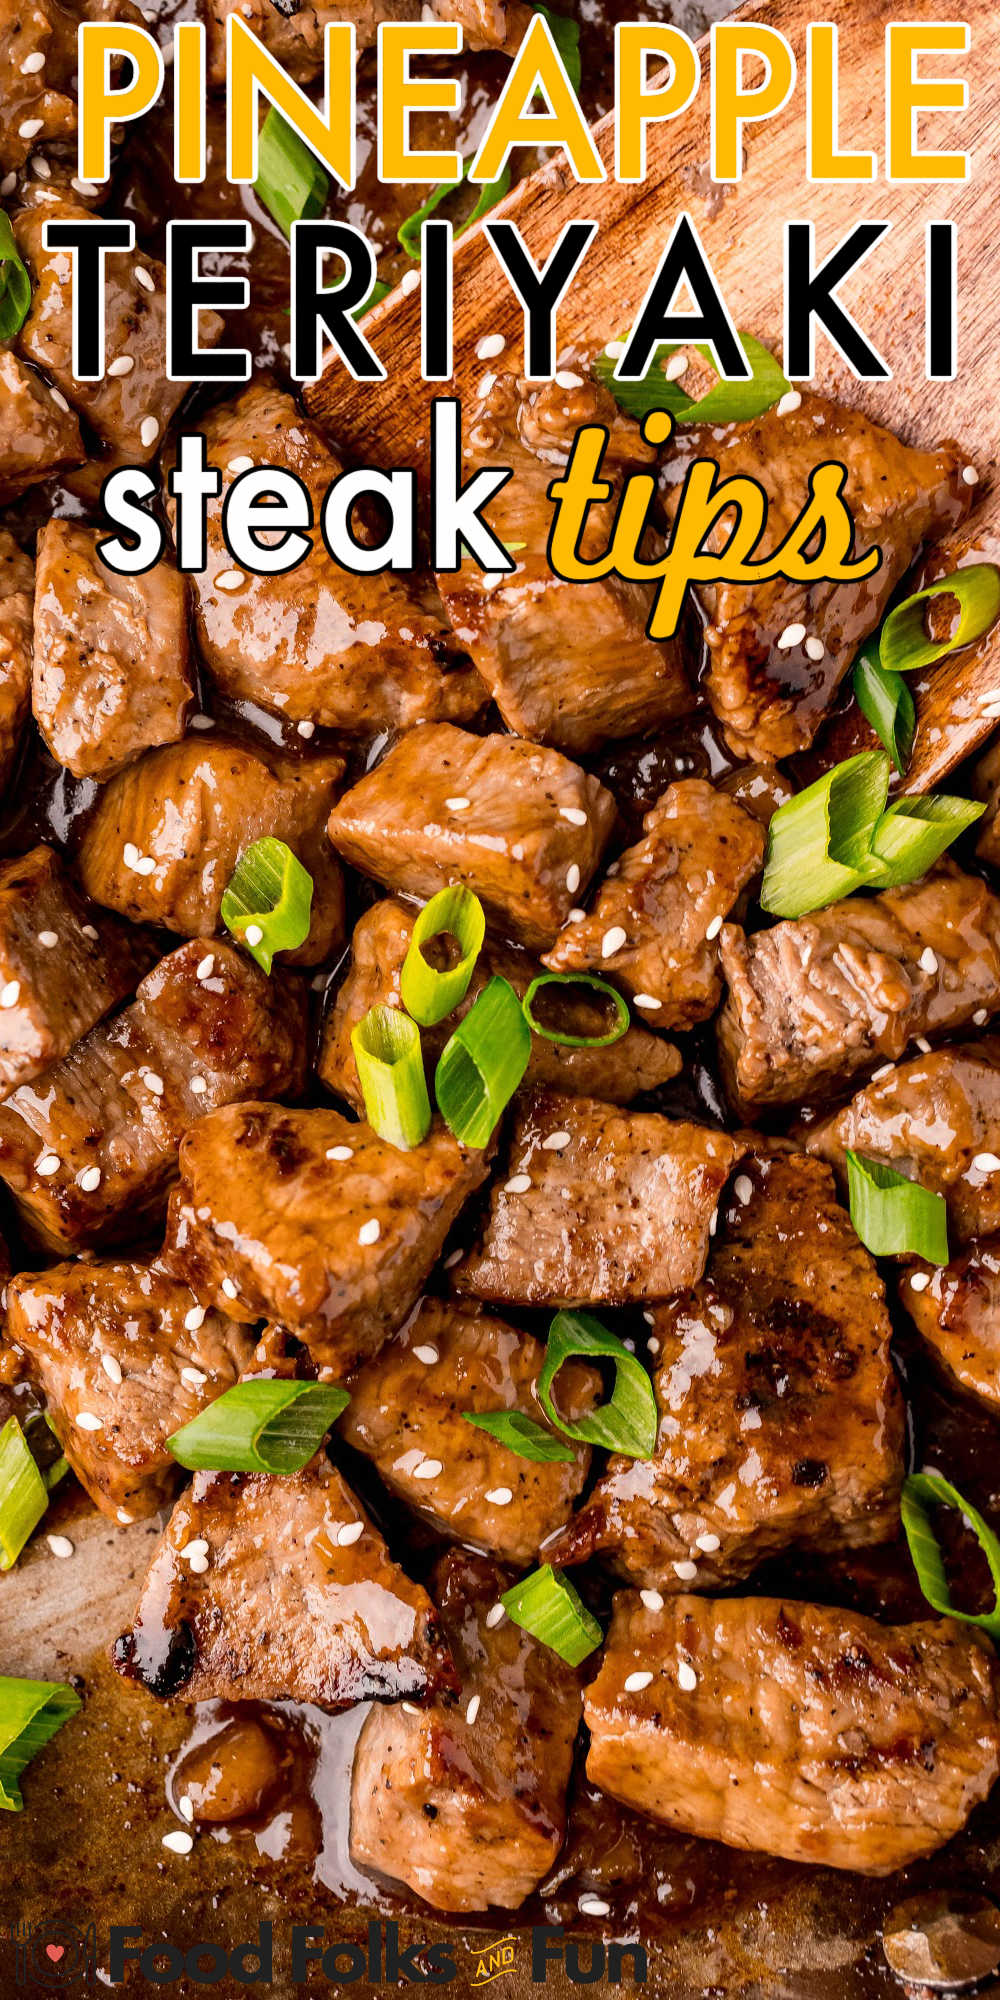 These Teriyaki Steak Tips are cooked to perfection and mixed with a thick and sticky pineapple teriyaki sauce! My family goes crazy for this 30-minute steak tips recipe! via @foodfolksandfun